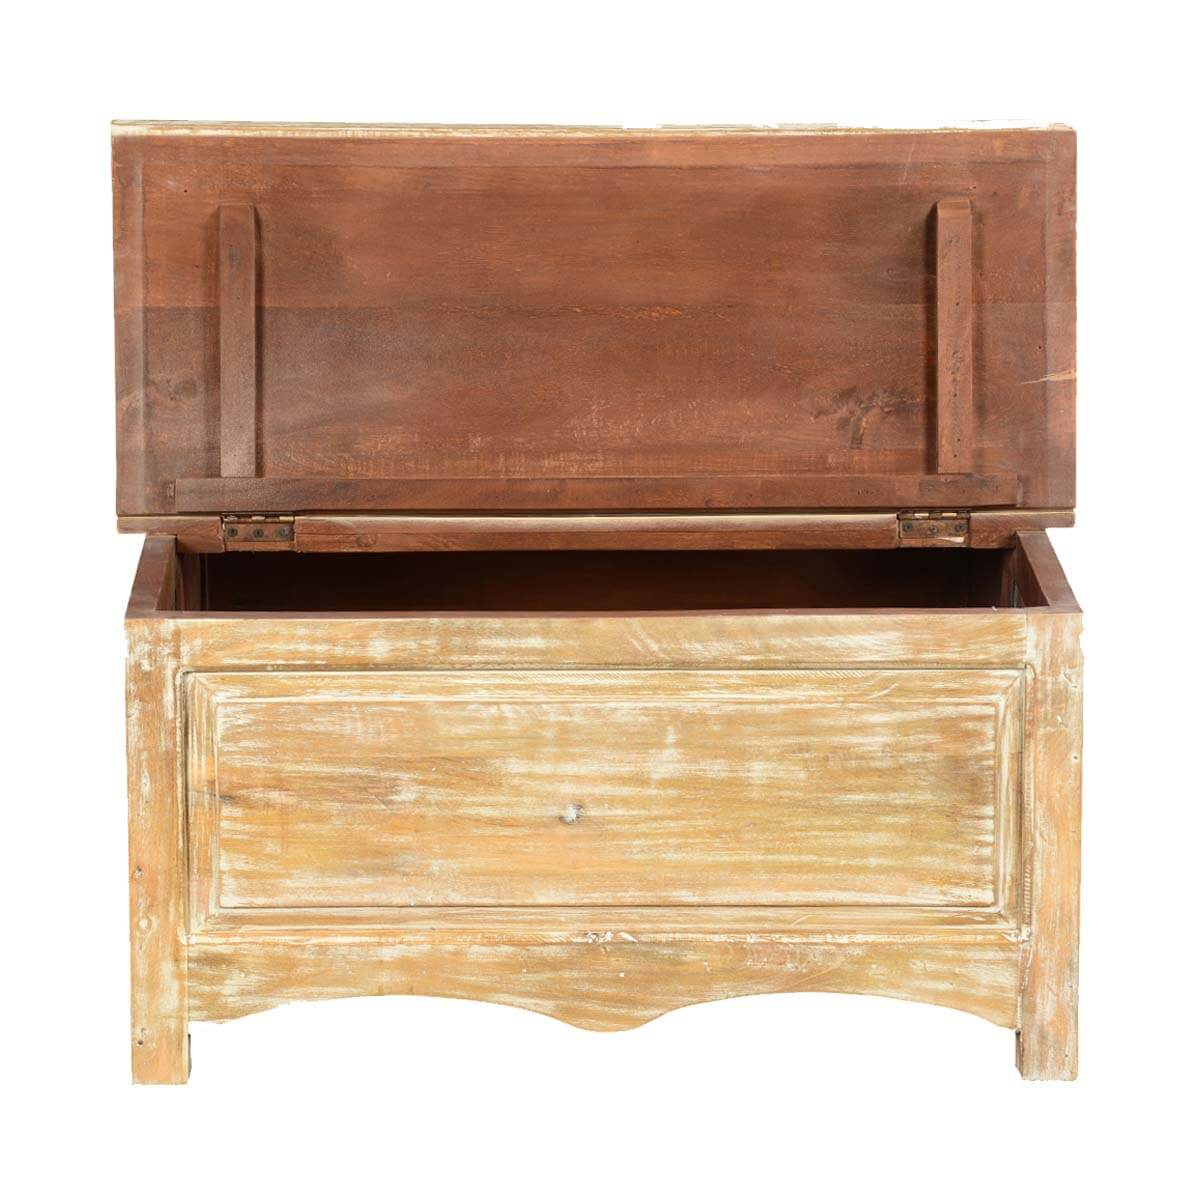 Winter white mango wood double lid storage coffee table chest Coffee table chest with storage